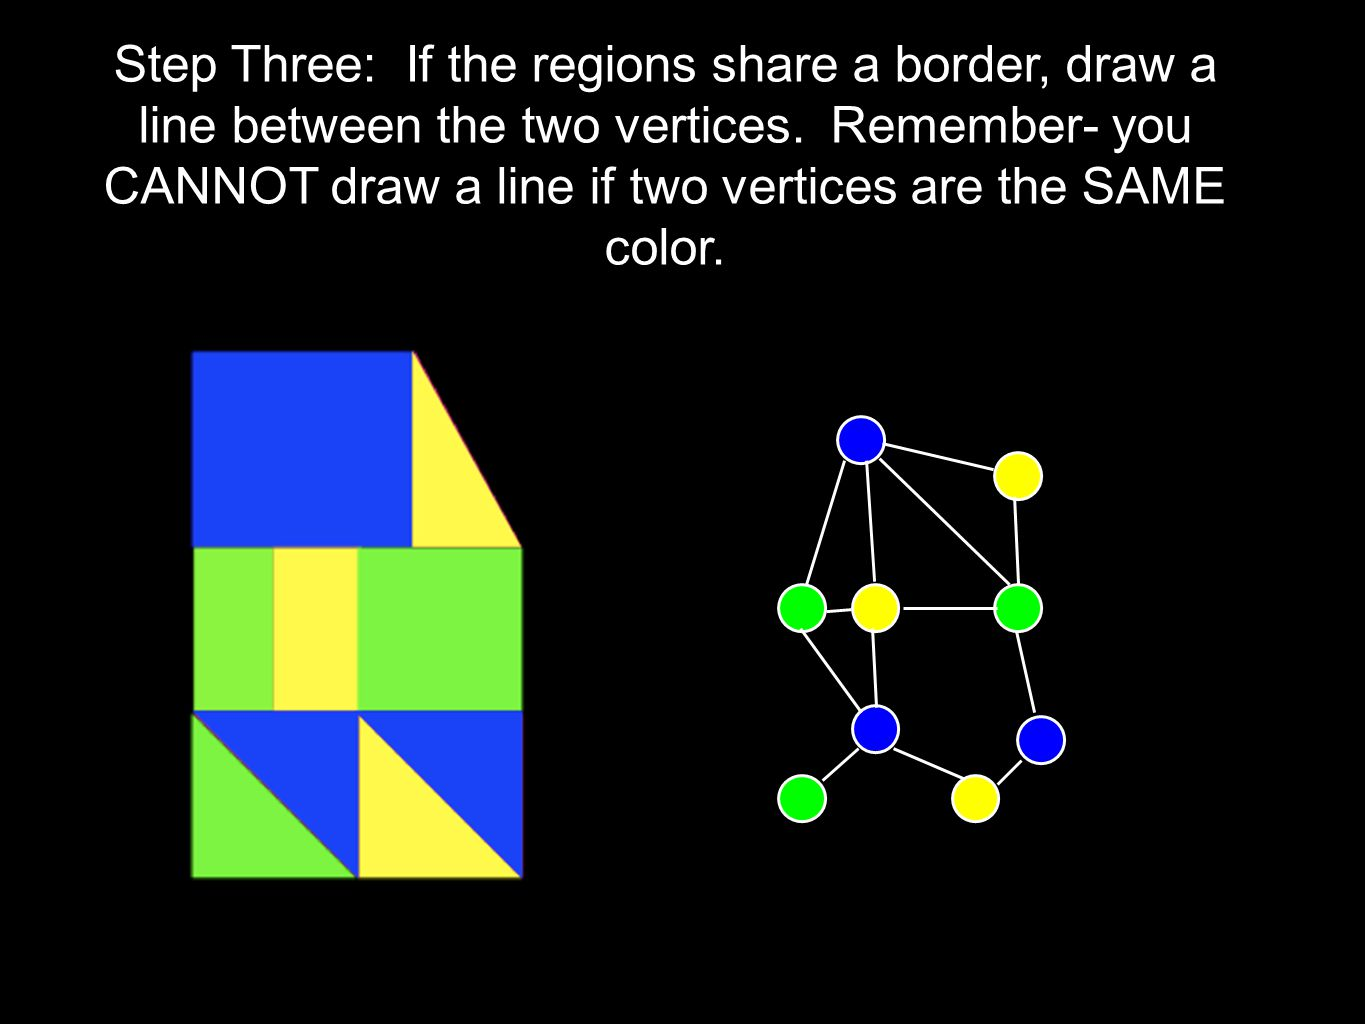 Step Three: If the regions share a border, draw a line between the two vertices.